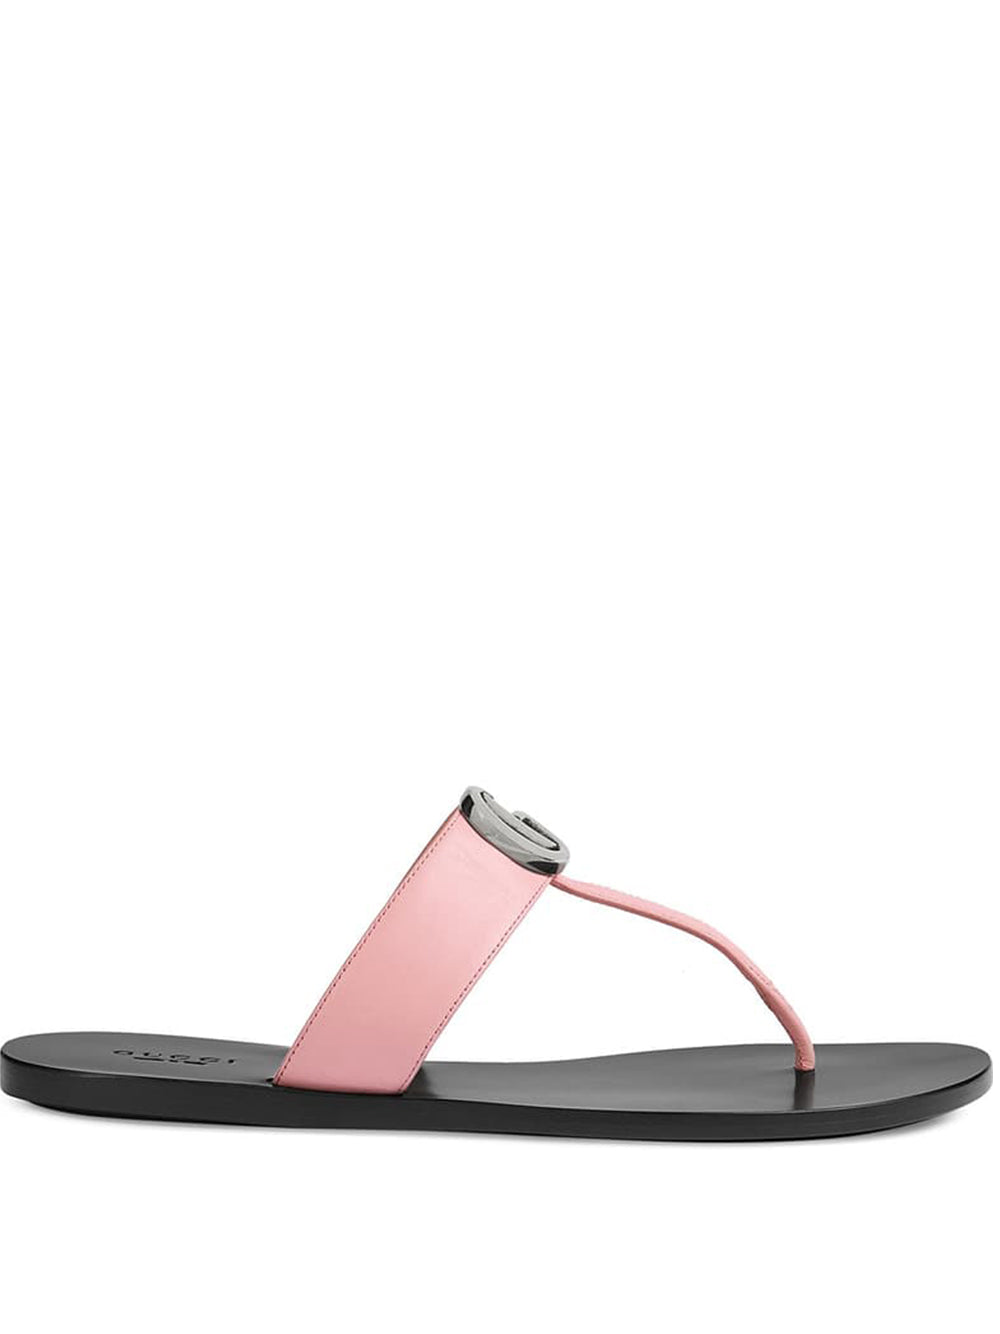 Women's Leather Thong Sandal with Double G - Pink